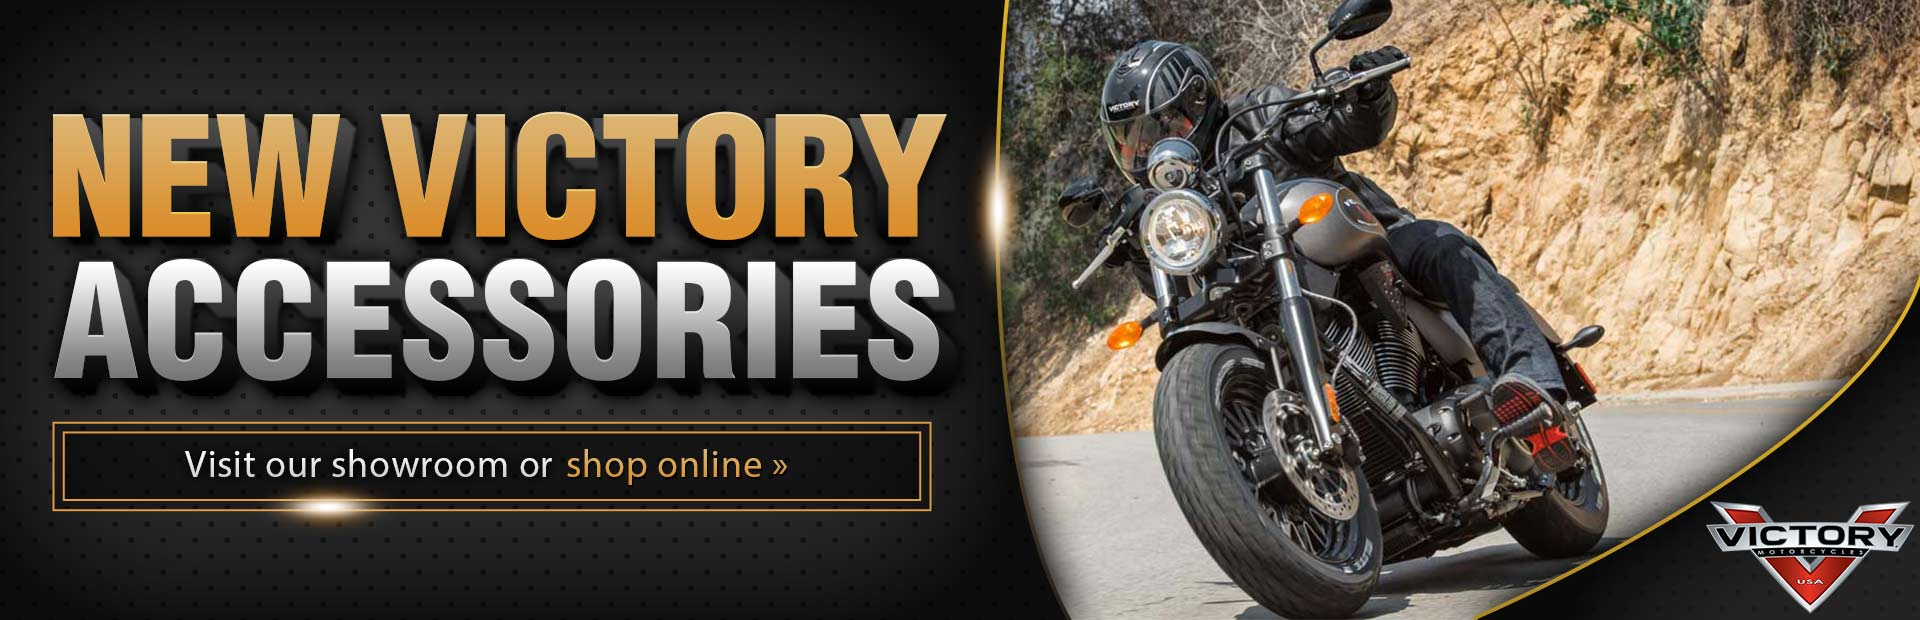 Check out our new Victory accessories! Visit our showroom, or click here to shop online.